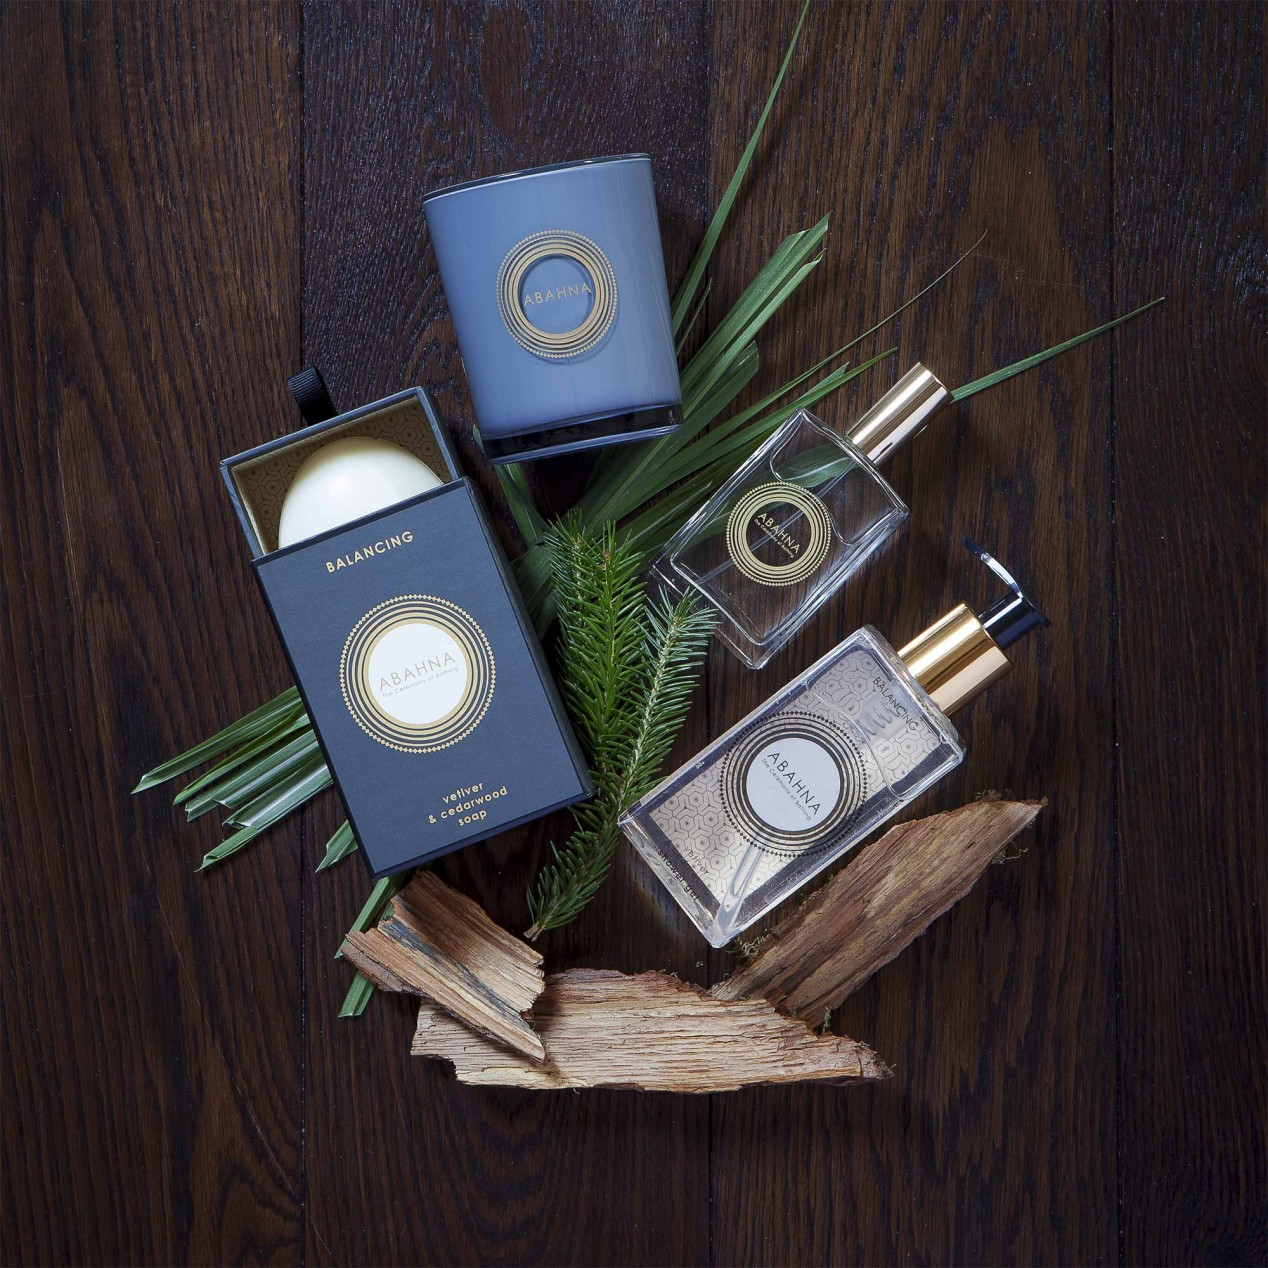 Abahna Vetiver and Cedarwood Soap available at Frontlinestyle Wells perfumery.